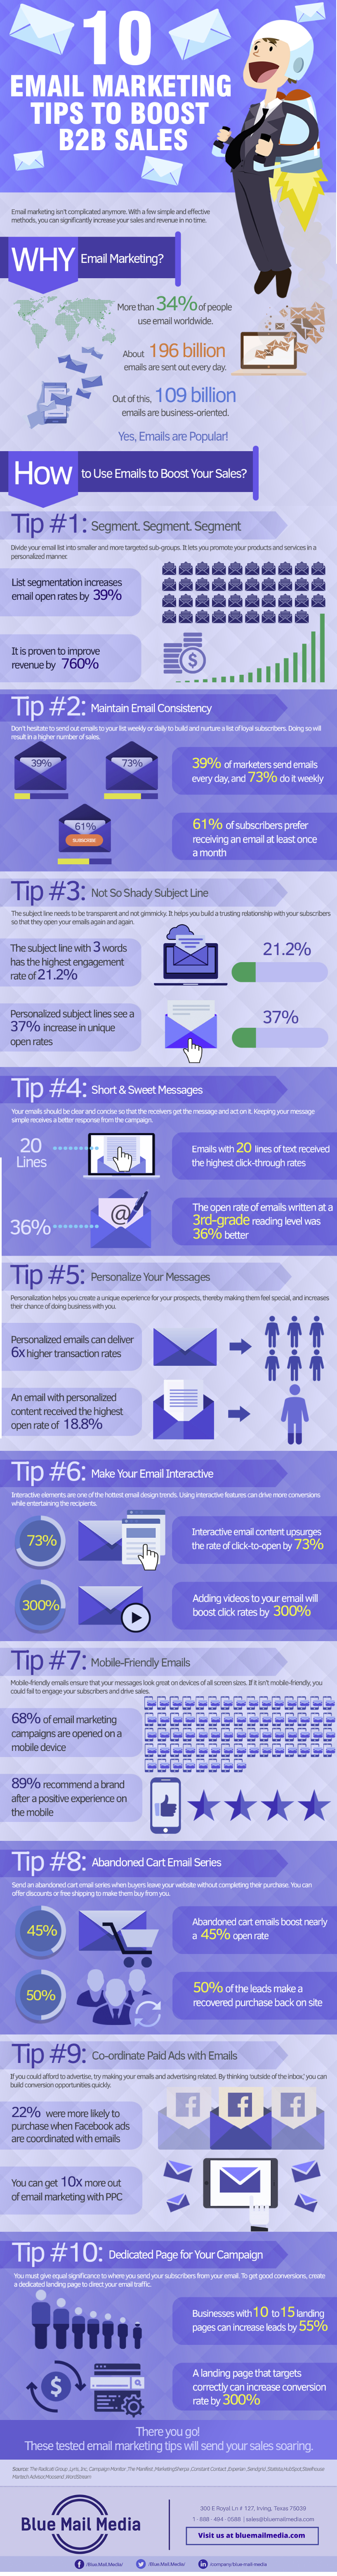 Infographic highlights ten key email marketing shifts